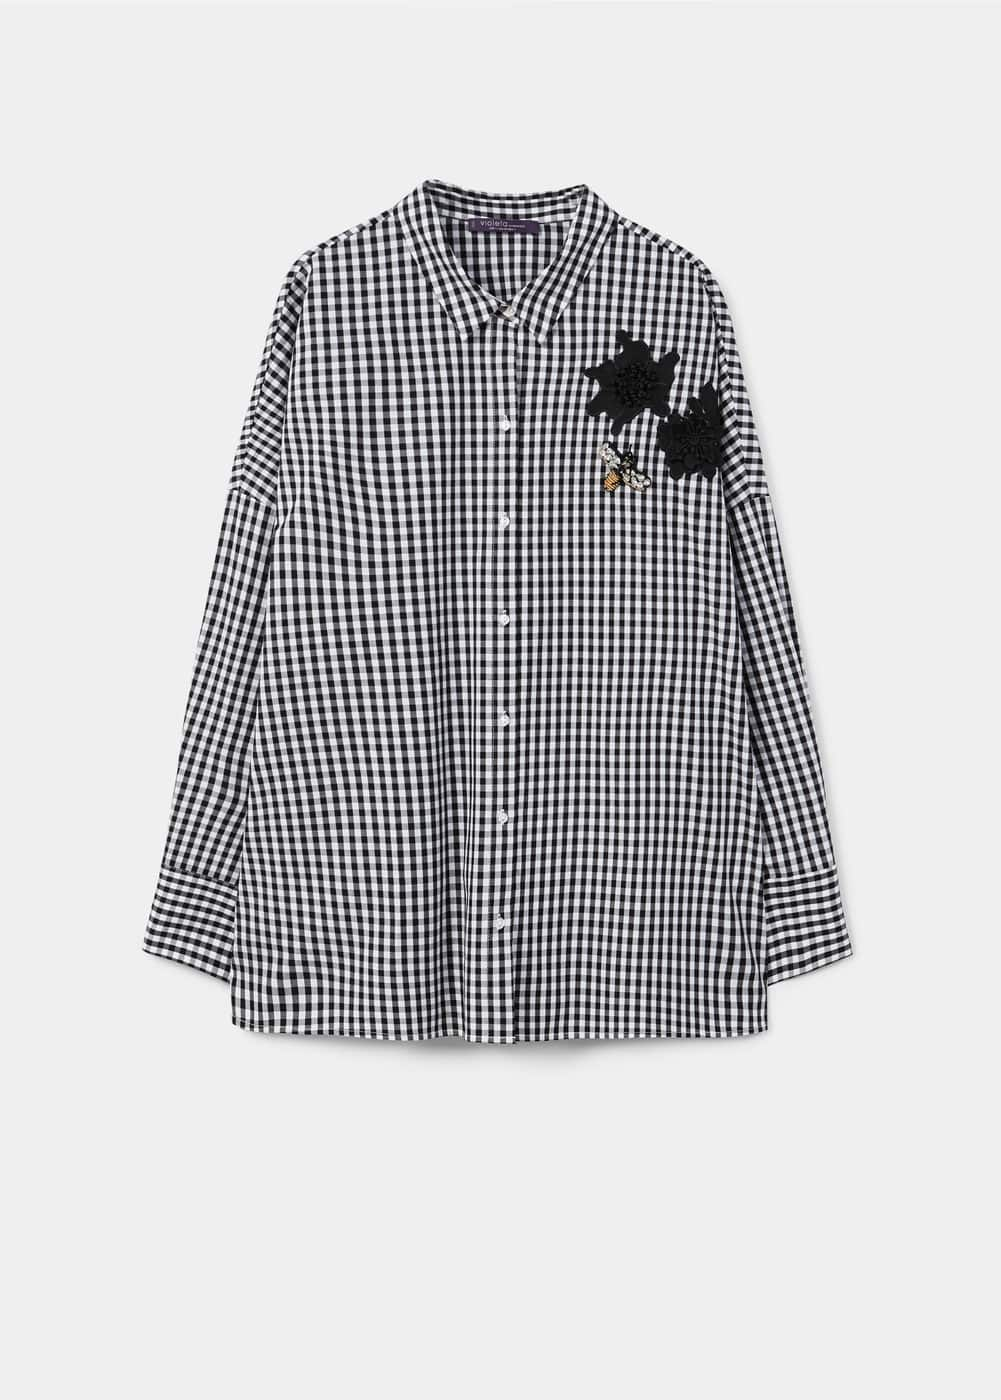 Patched gingham check shirt | MANGO